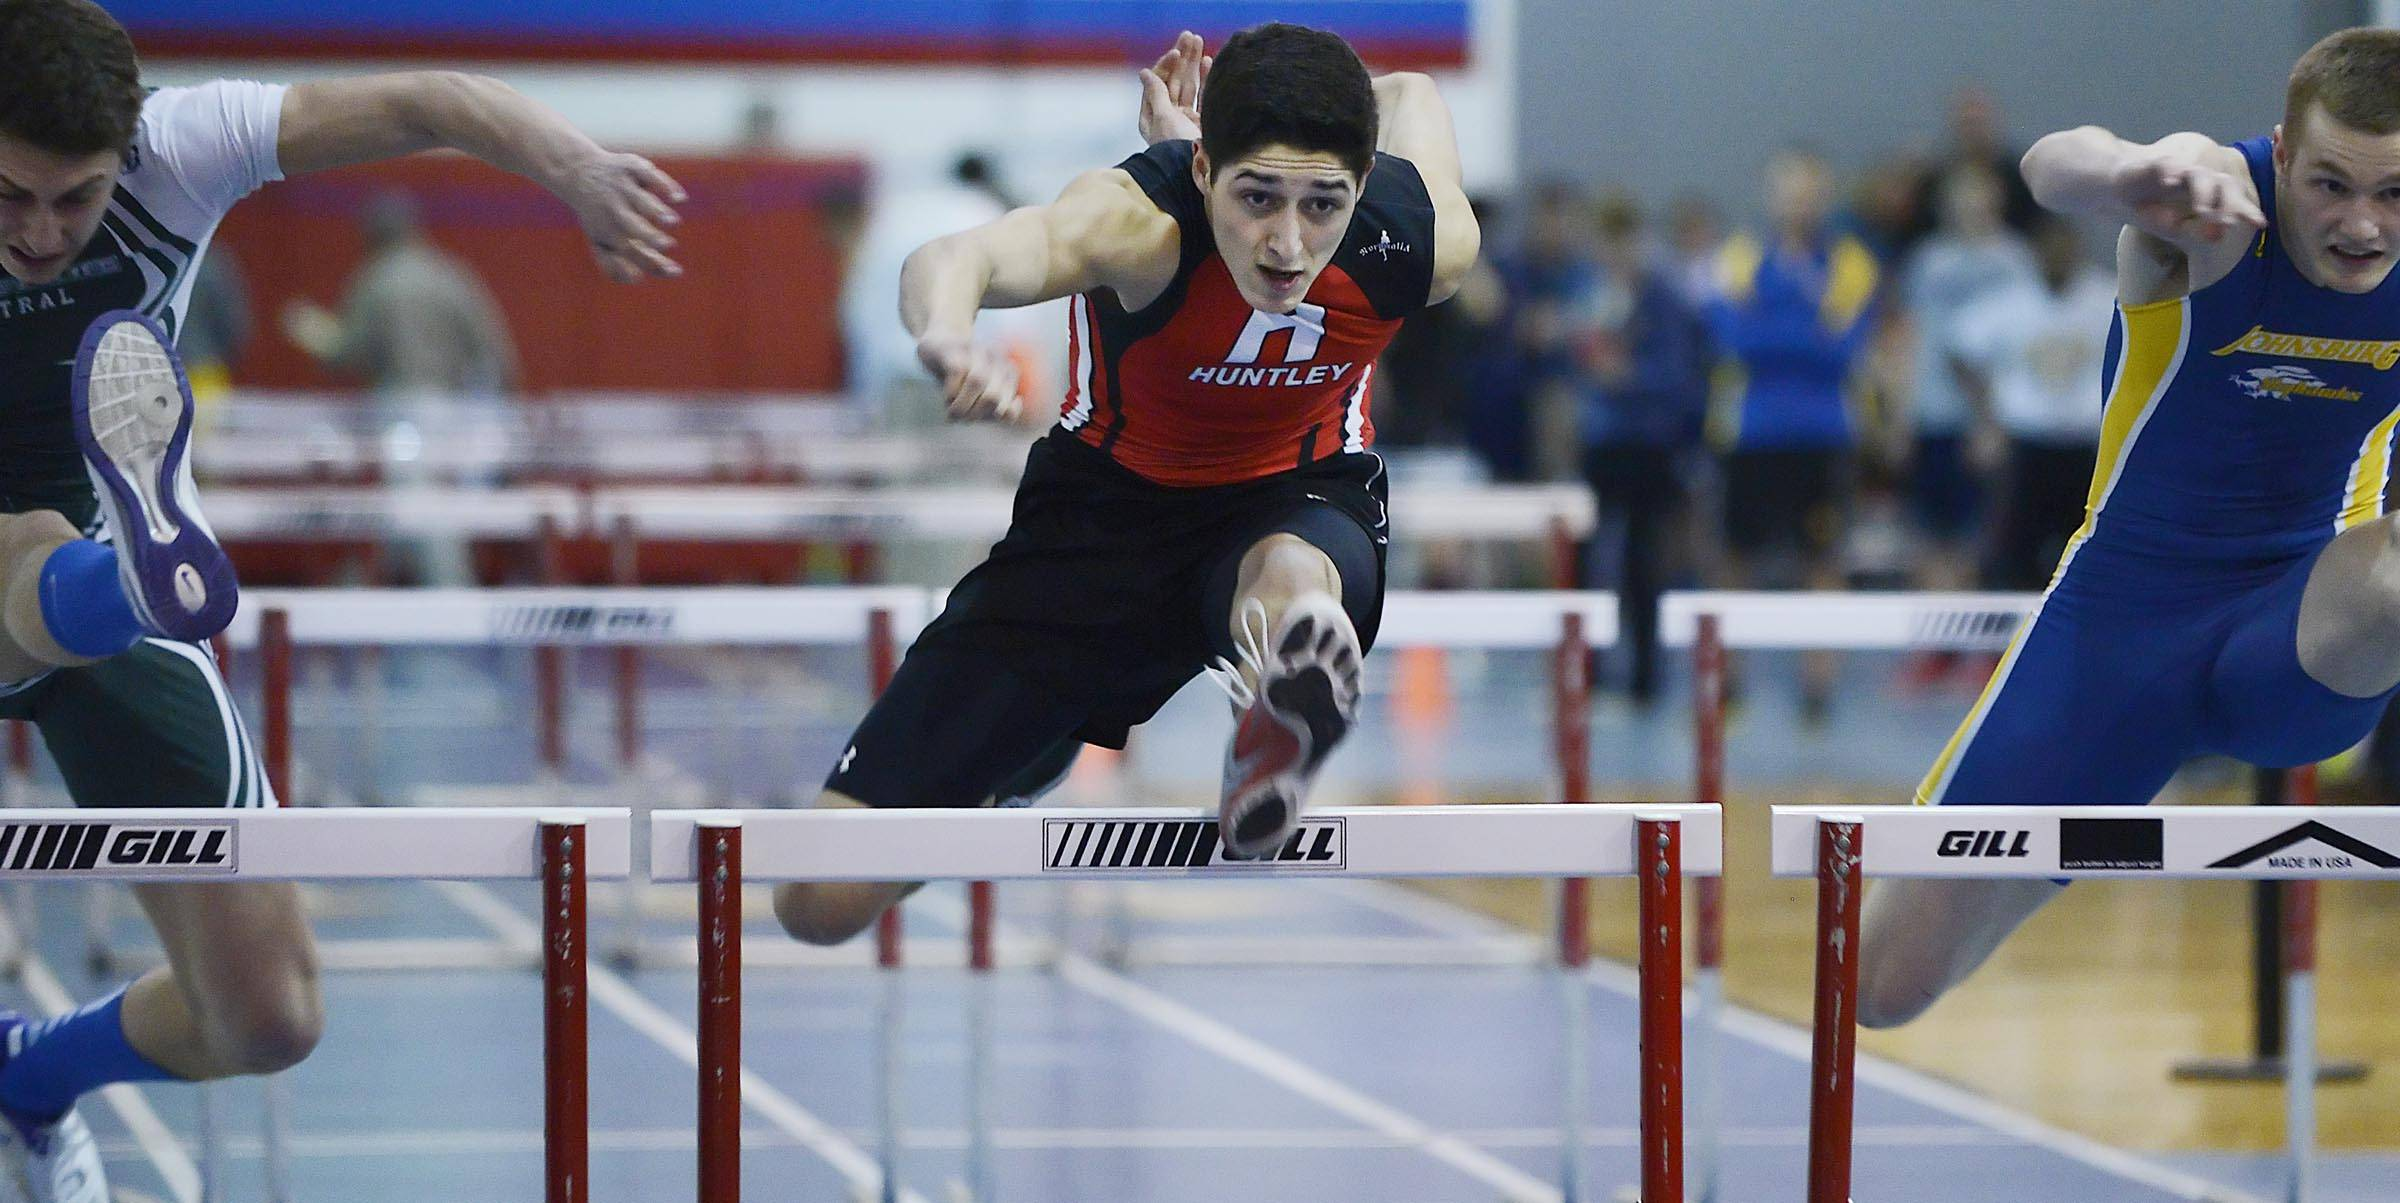 Huntley's Brennen Bell comes over the last obstacle on his way to a meet record time in the 55-meter high hurdles Wednesday at the Fox Valley Conference boys indoor track meet at Dundee-Crown High School in Carpentersville.